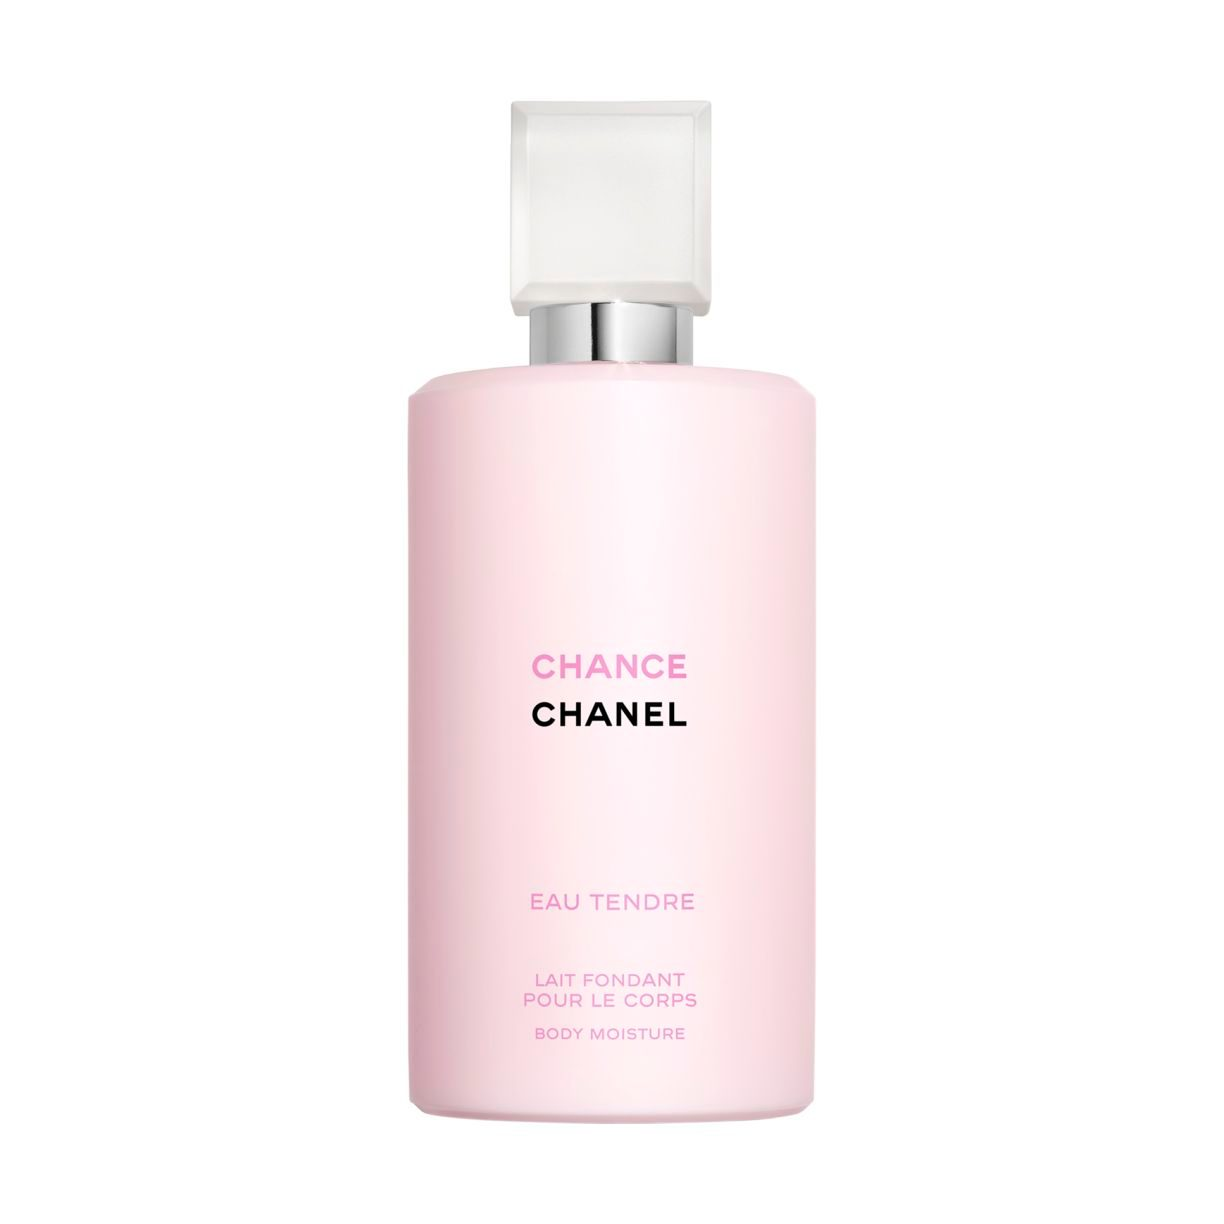 CHANCE EAU TENDRE BODY MOISTURE